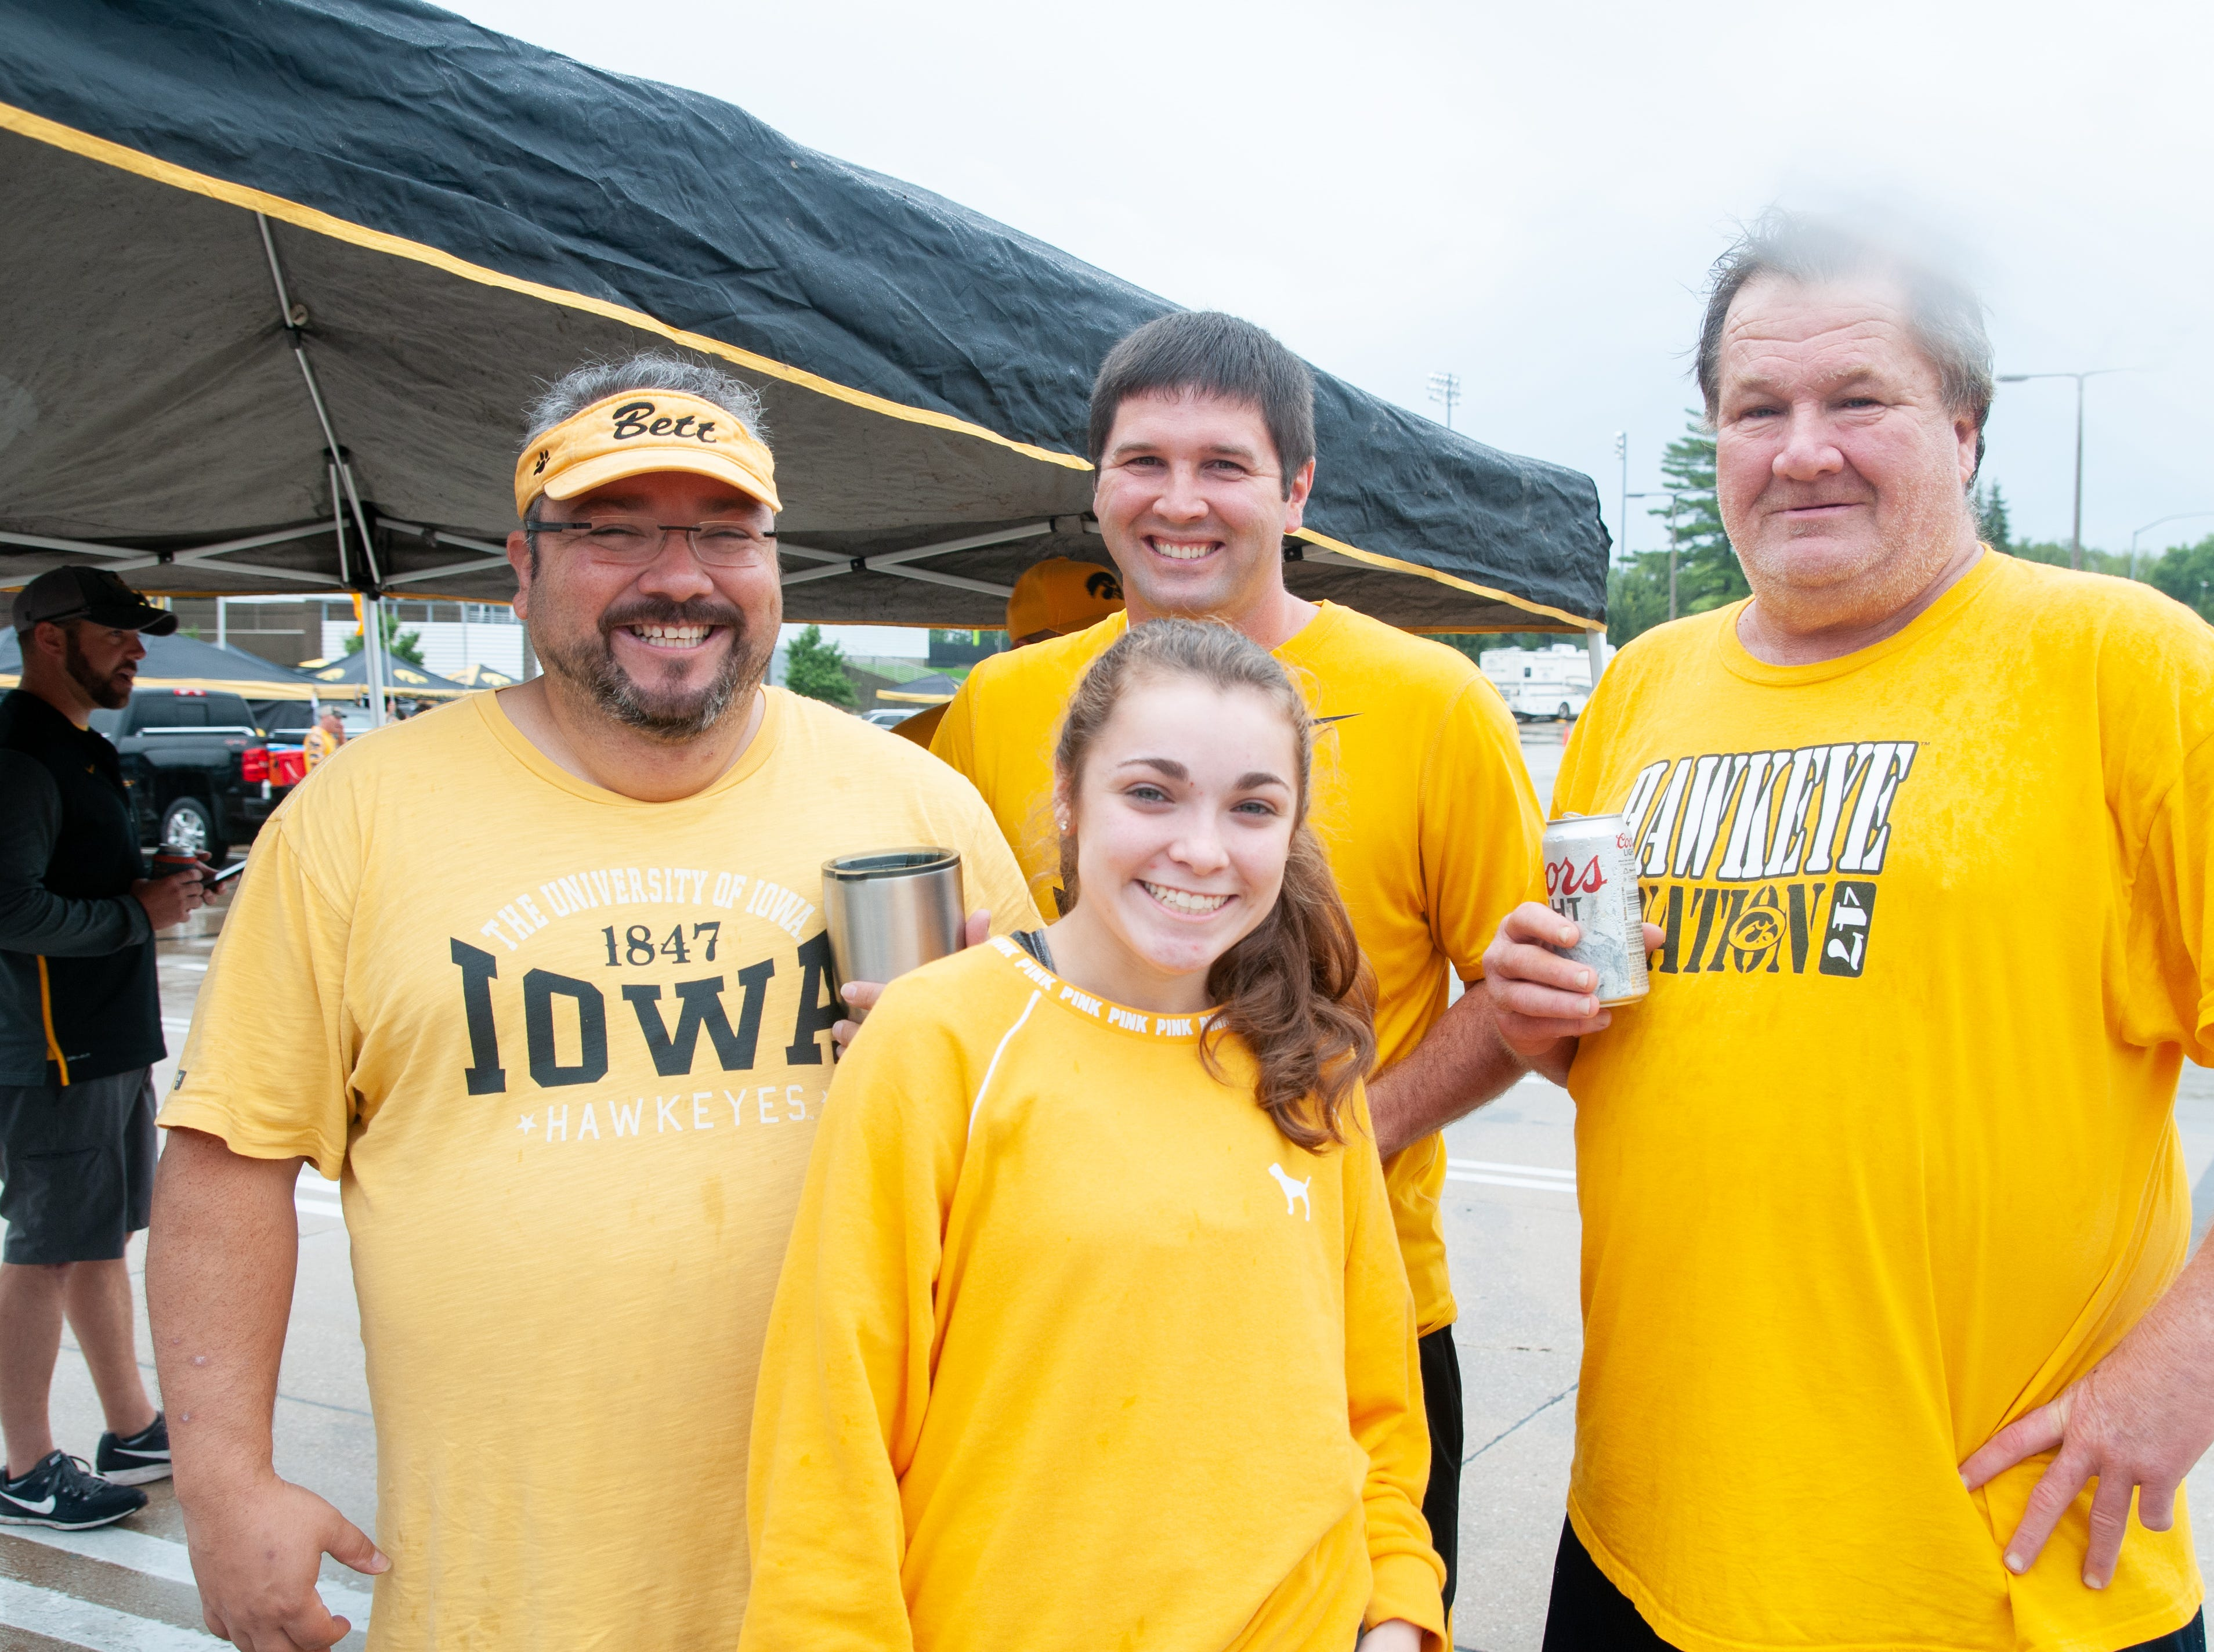 The Skahill Tailgate, of Bettendorf, Saturday, Sept. 1, 2018, while tailgating before the Iowa game against Northern Illinois in Iowa City.